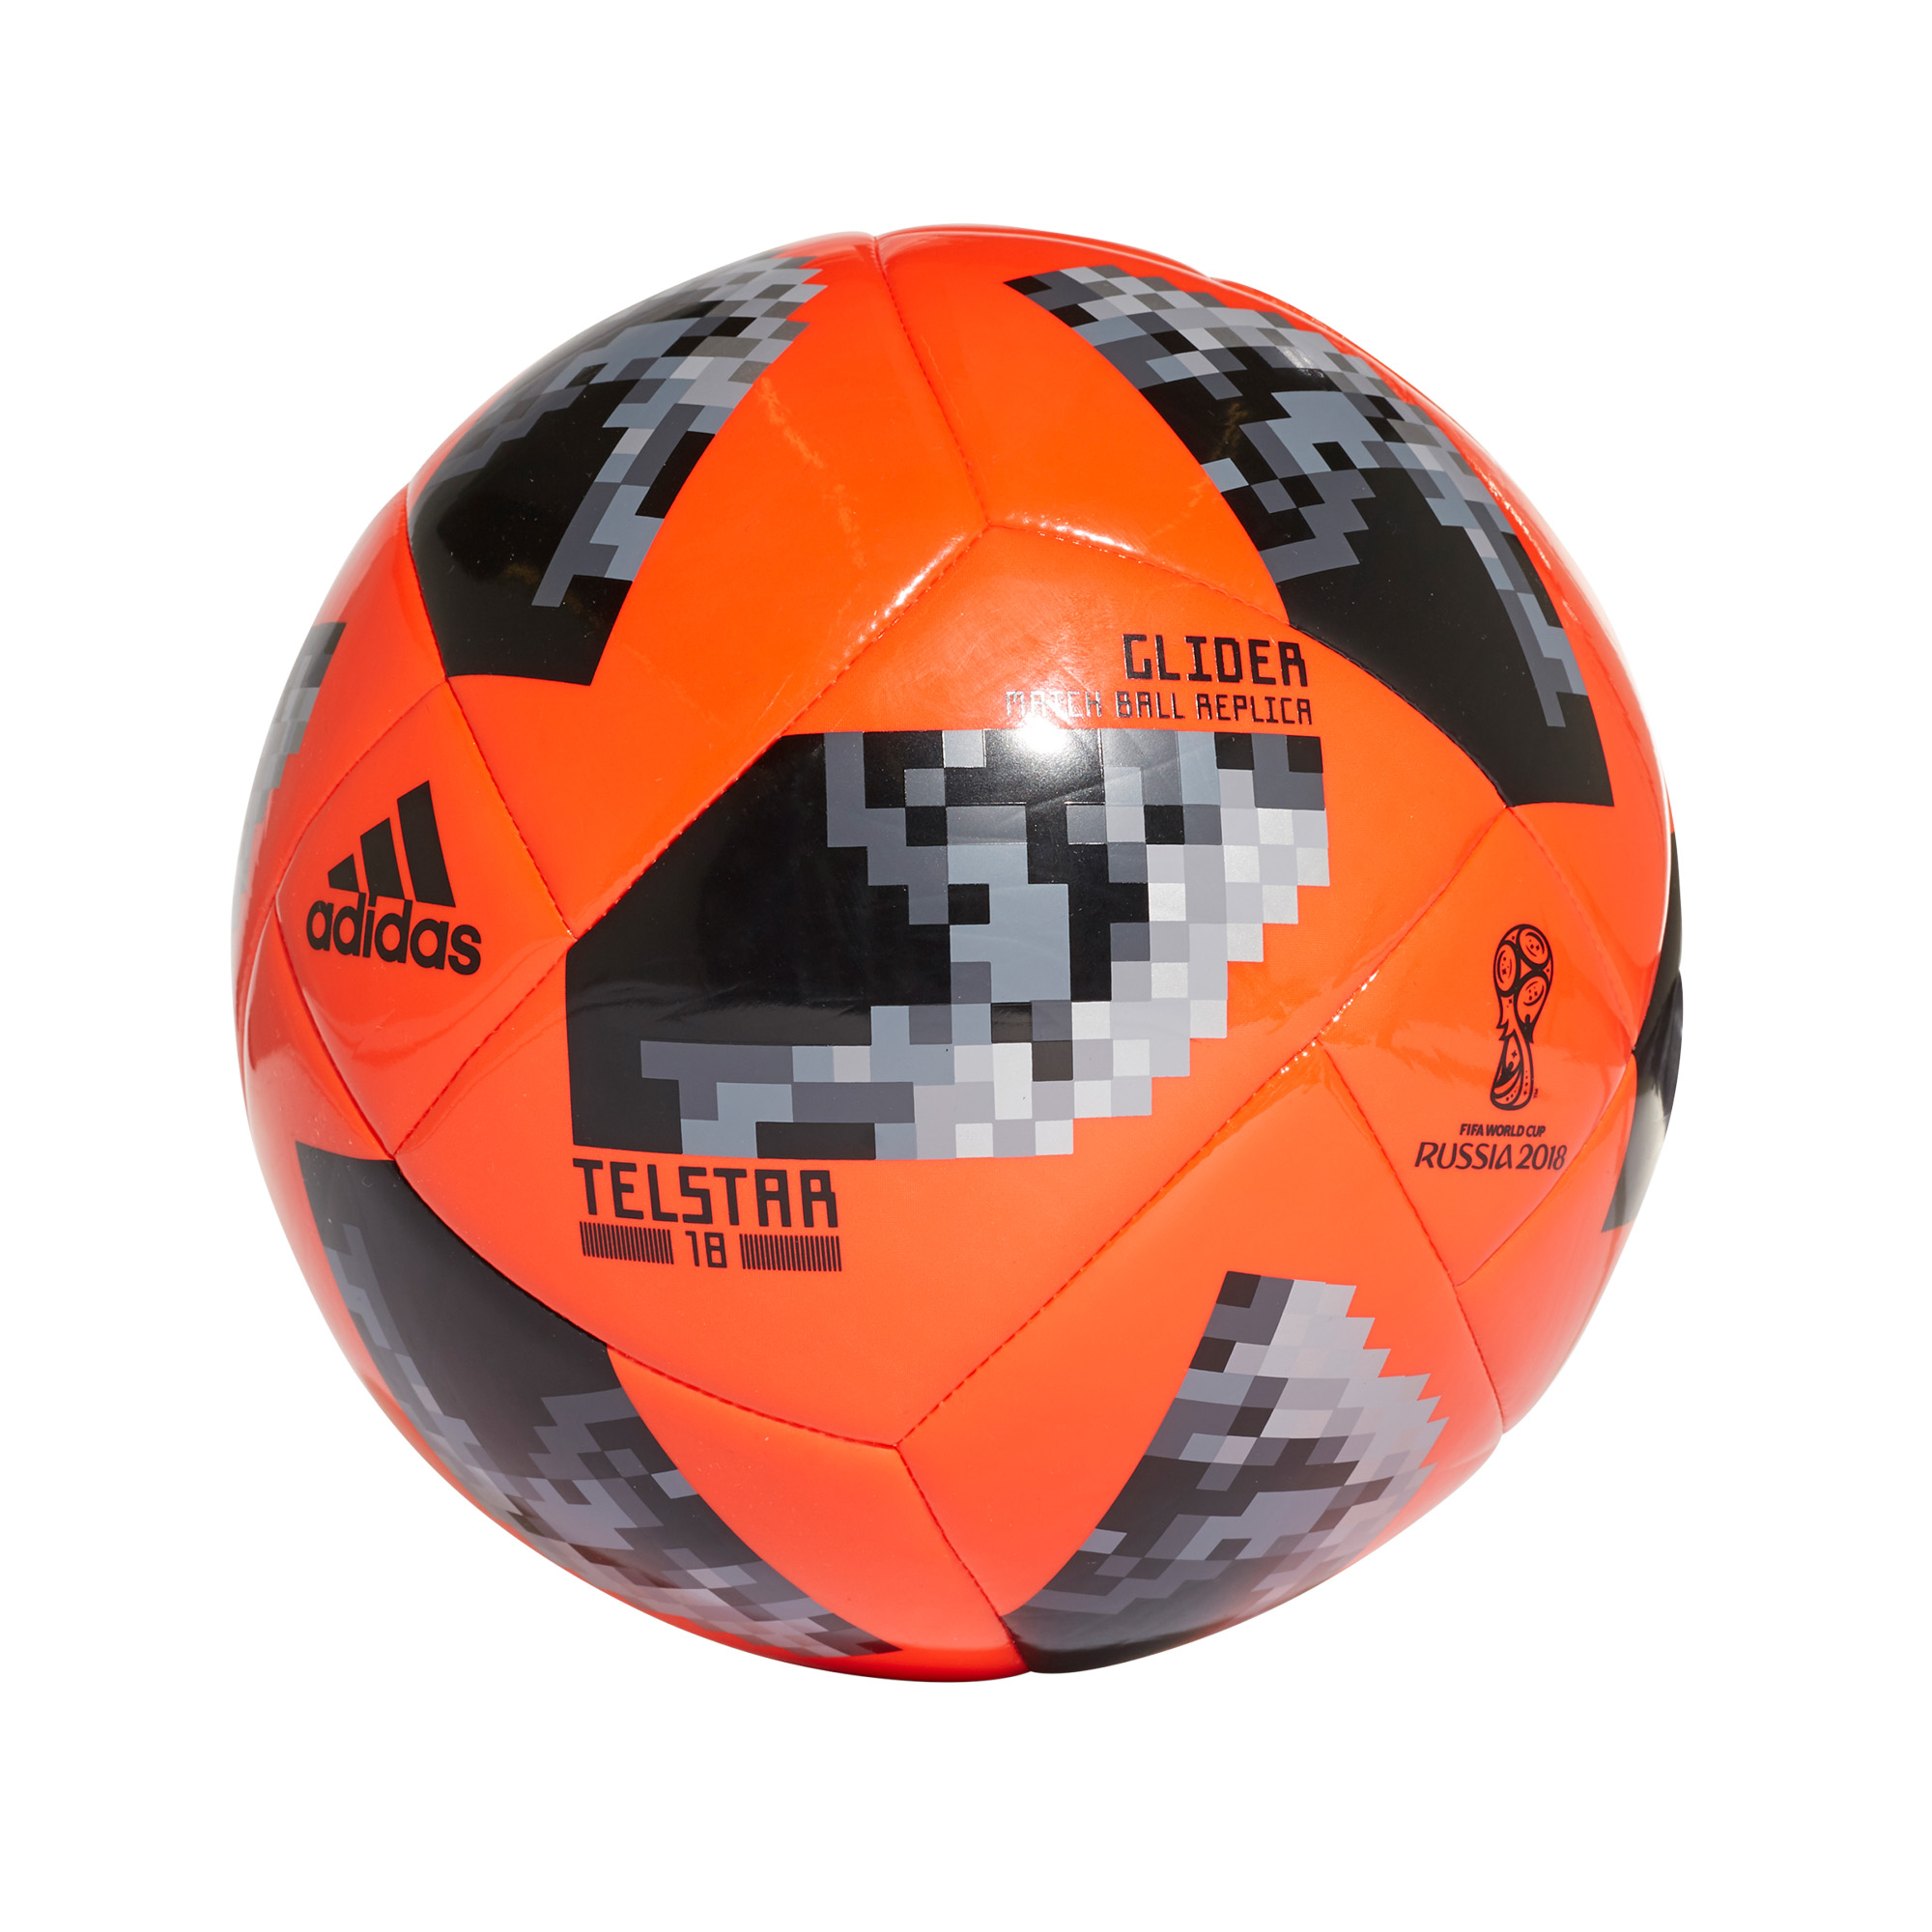 dbb8f234b adidas Telstar Fifa World Cup 2018 Glider Football Soccer Ball Solar  Red/Black